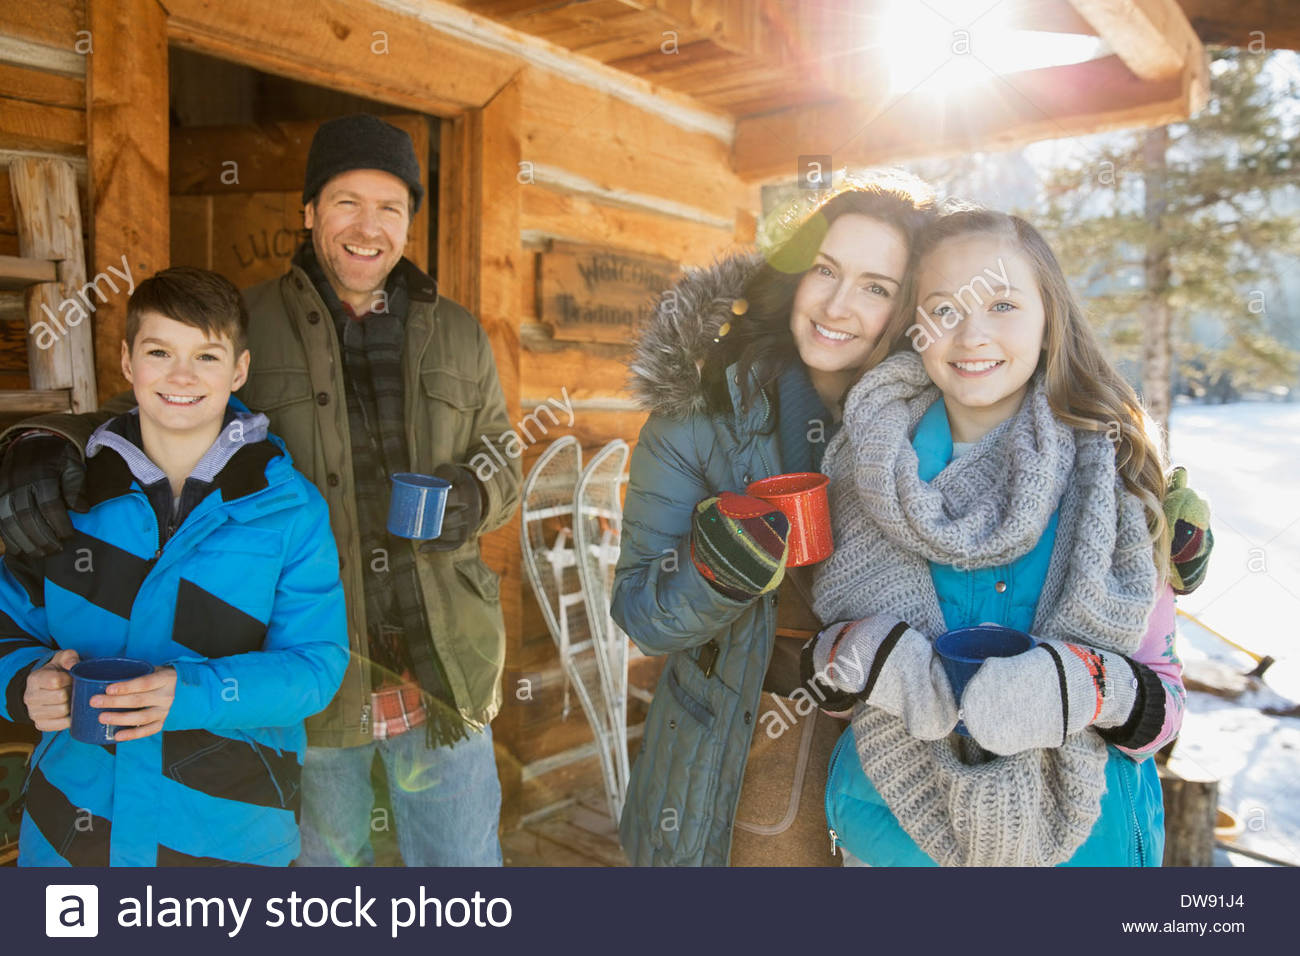 Portrait of family drinking hot chocolate outdoors - Stock Image